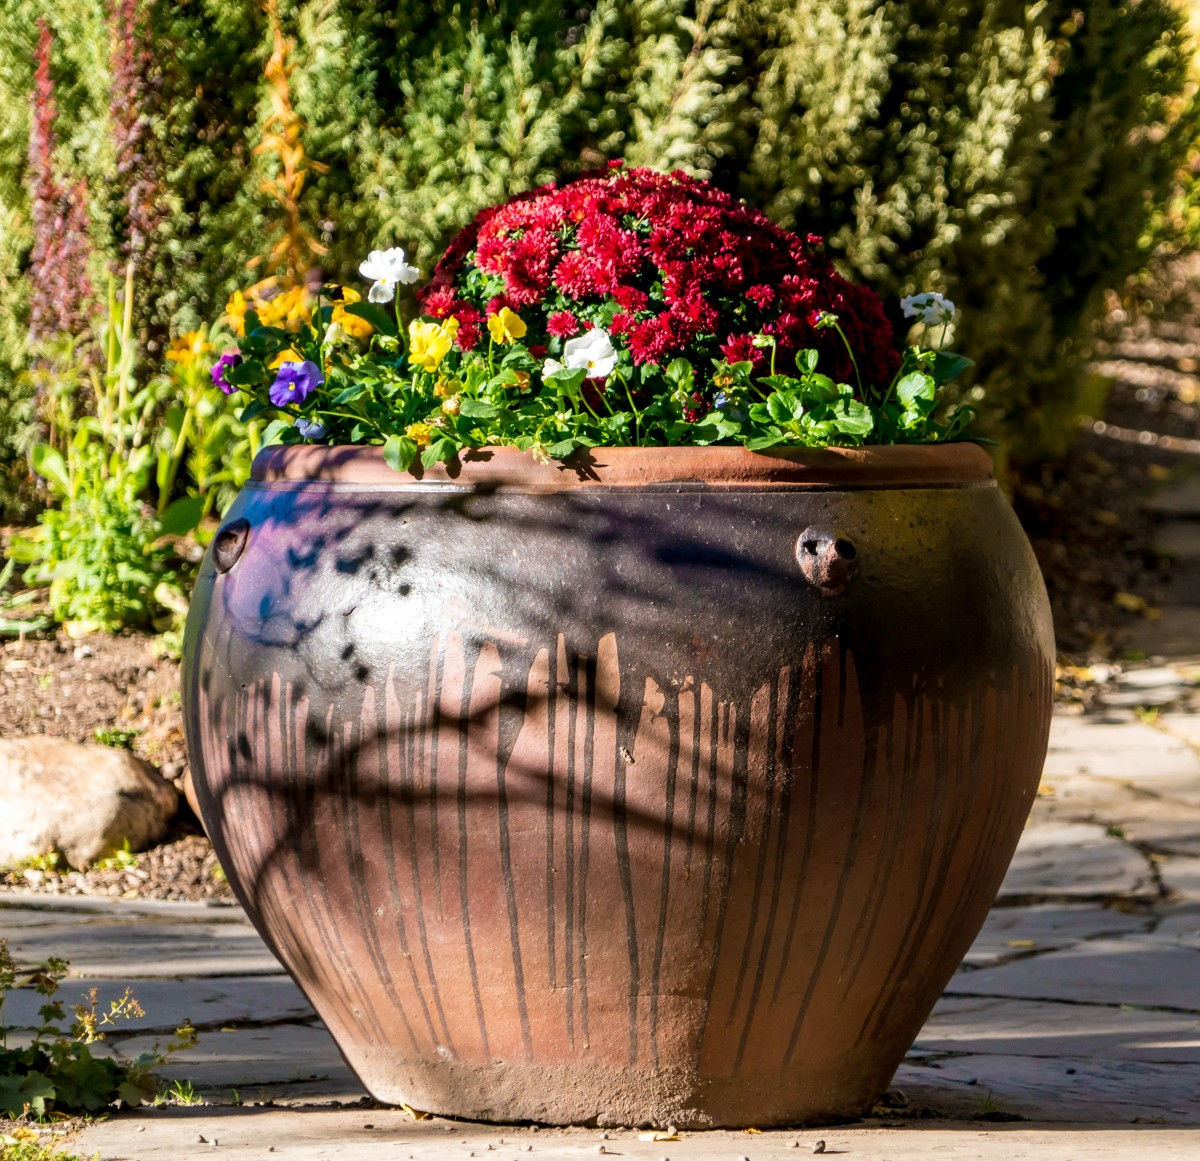 flowers_potted_plant_floral_colorful_green_gardening_nature-418566.jpg